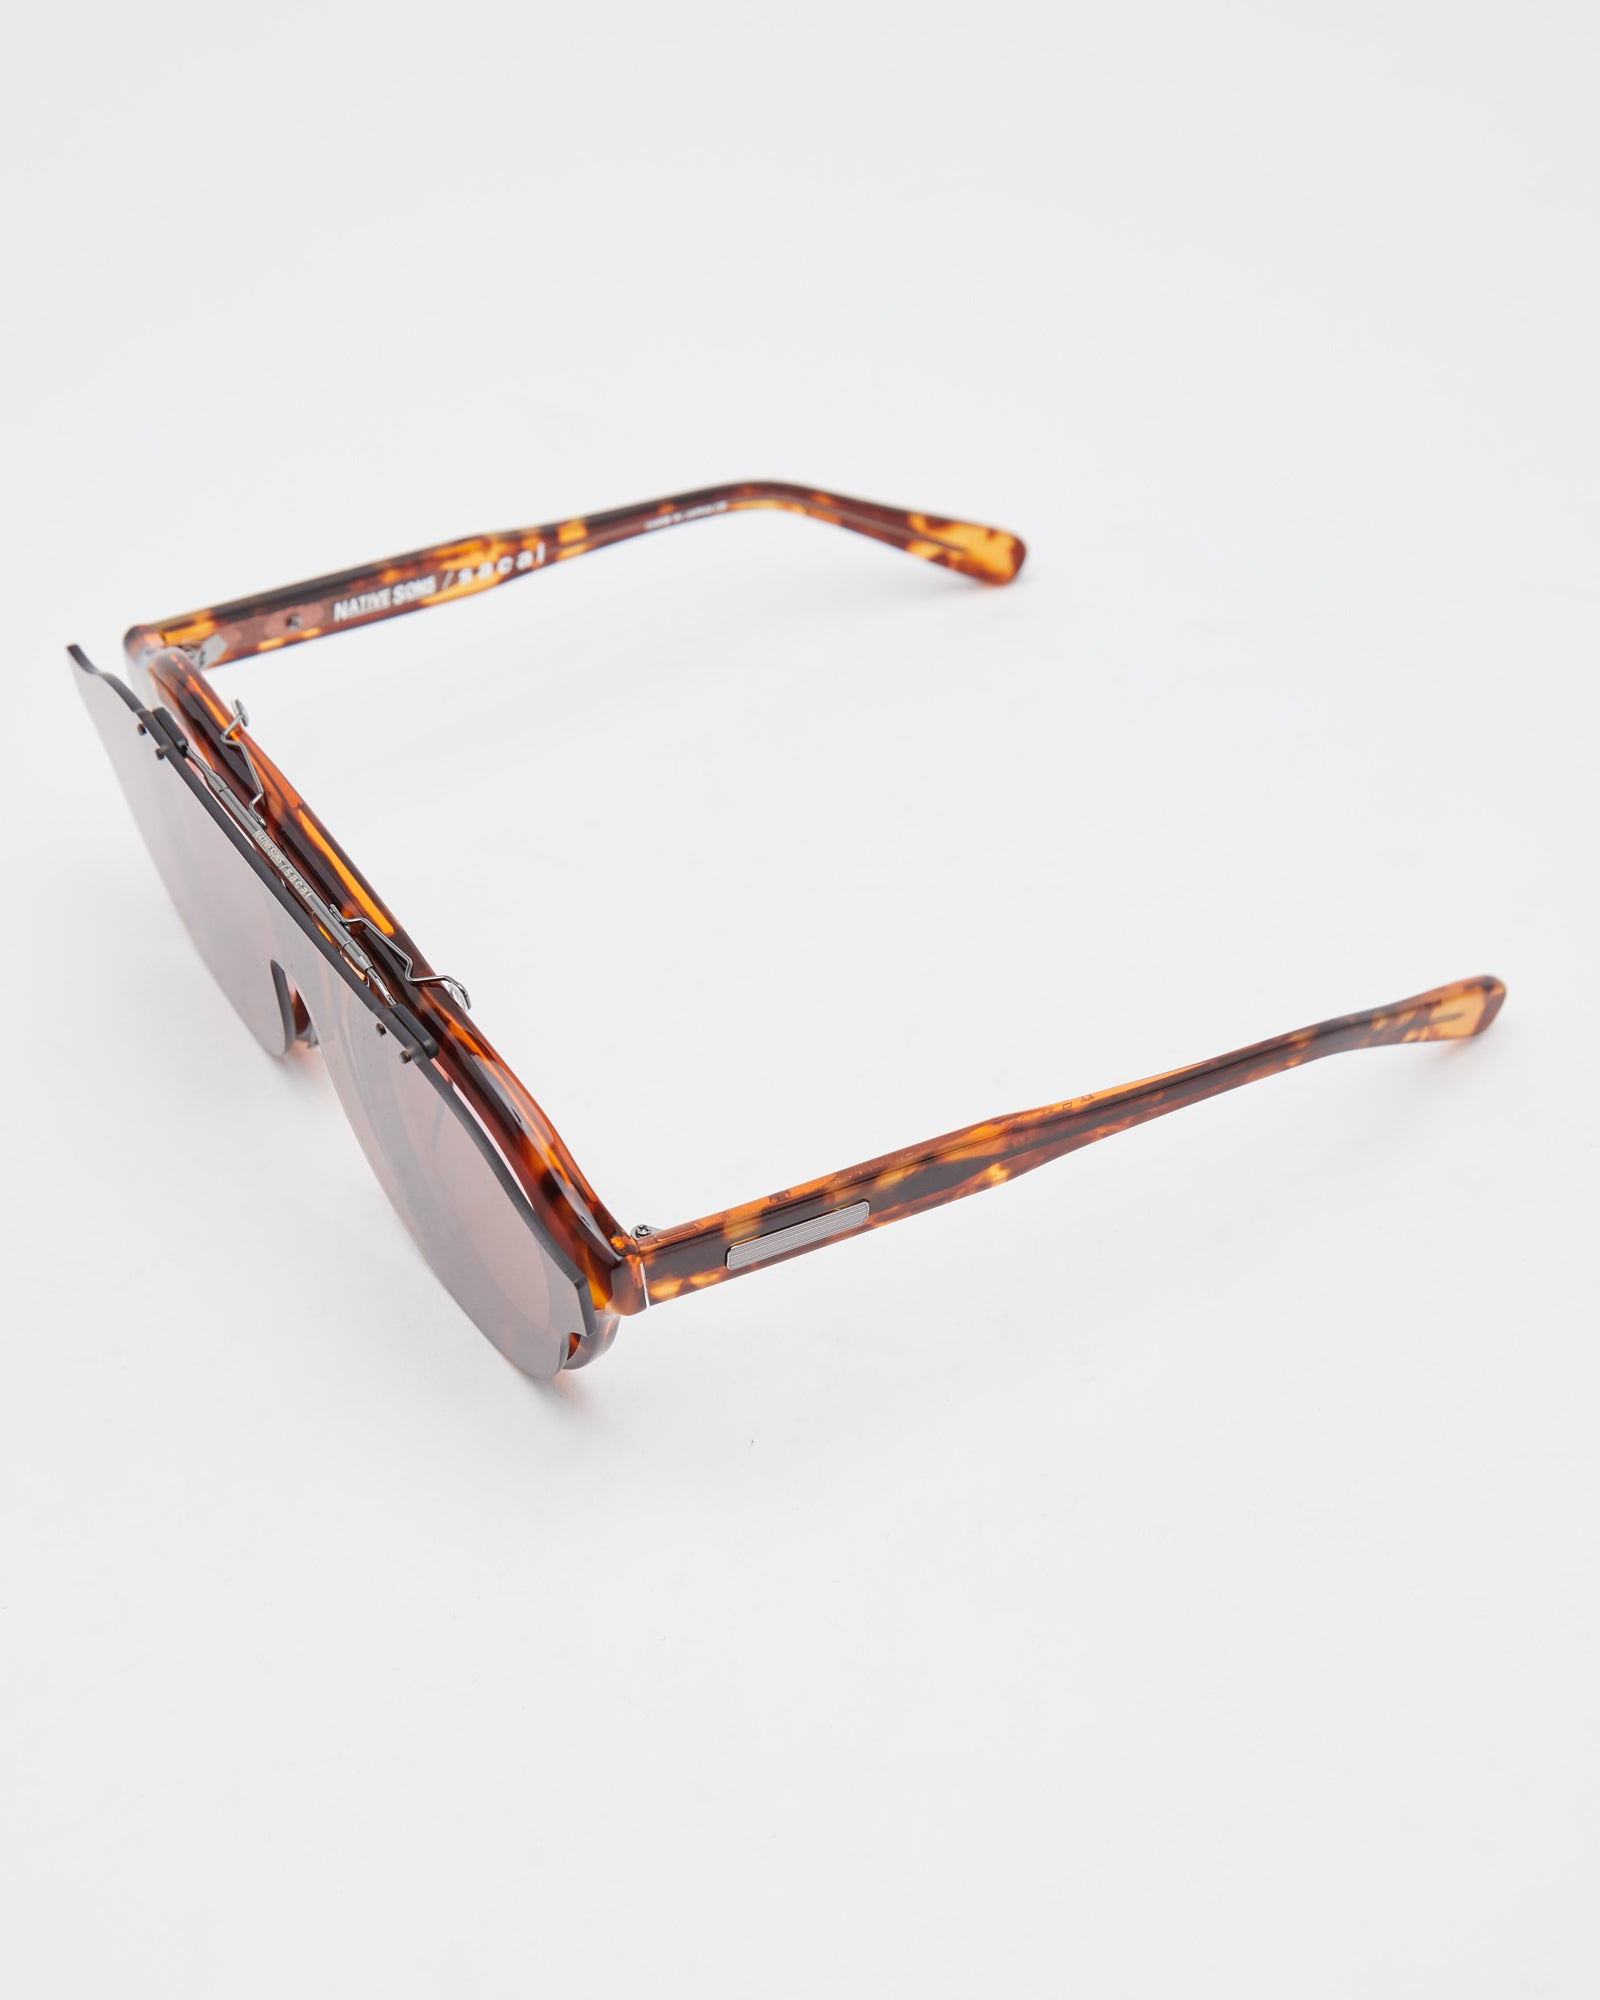 Native Sons x sacai Oppenheim Clip in Orange Turquoise